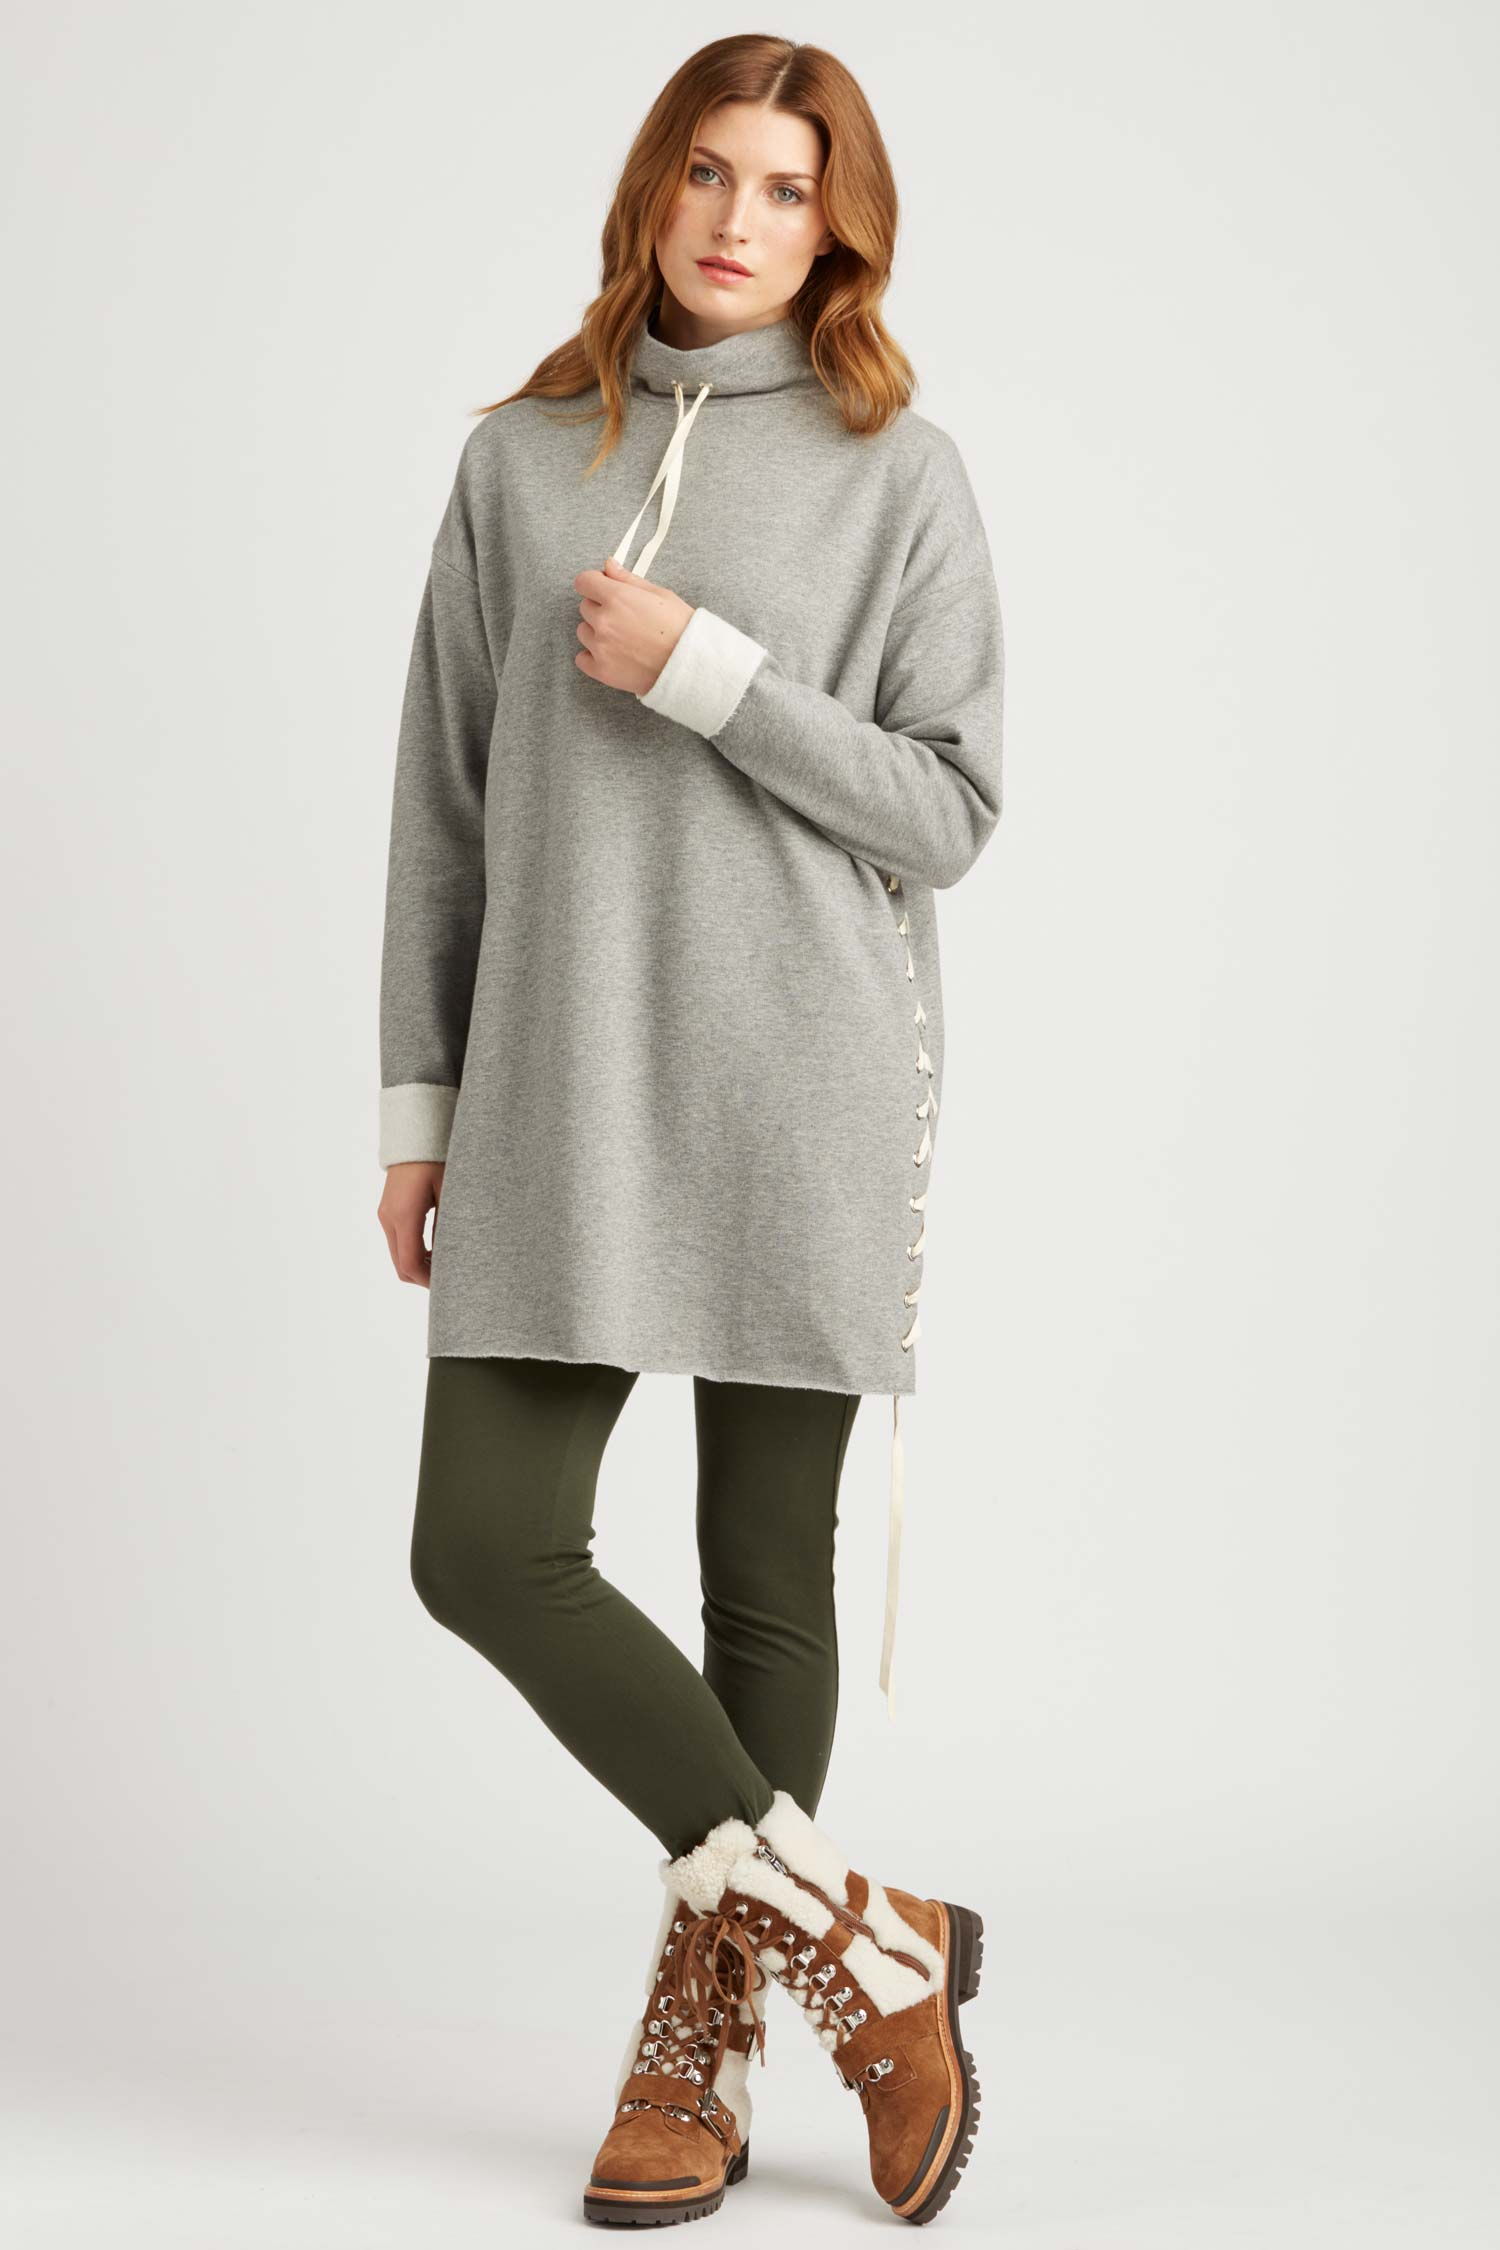 Womens Cocoon Lace Up Tunic in Gray Organic Cotton Fleece